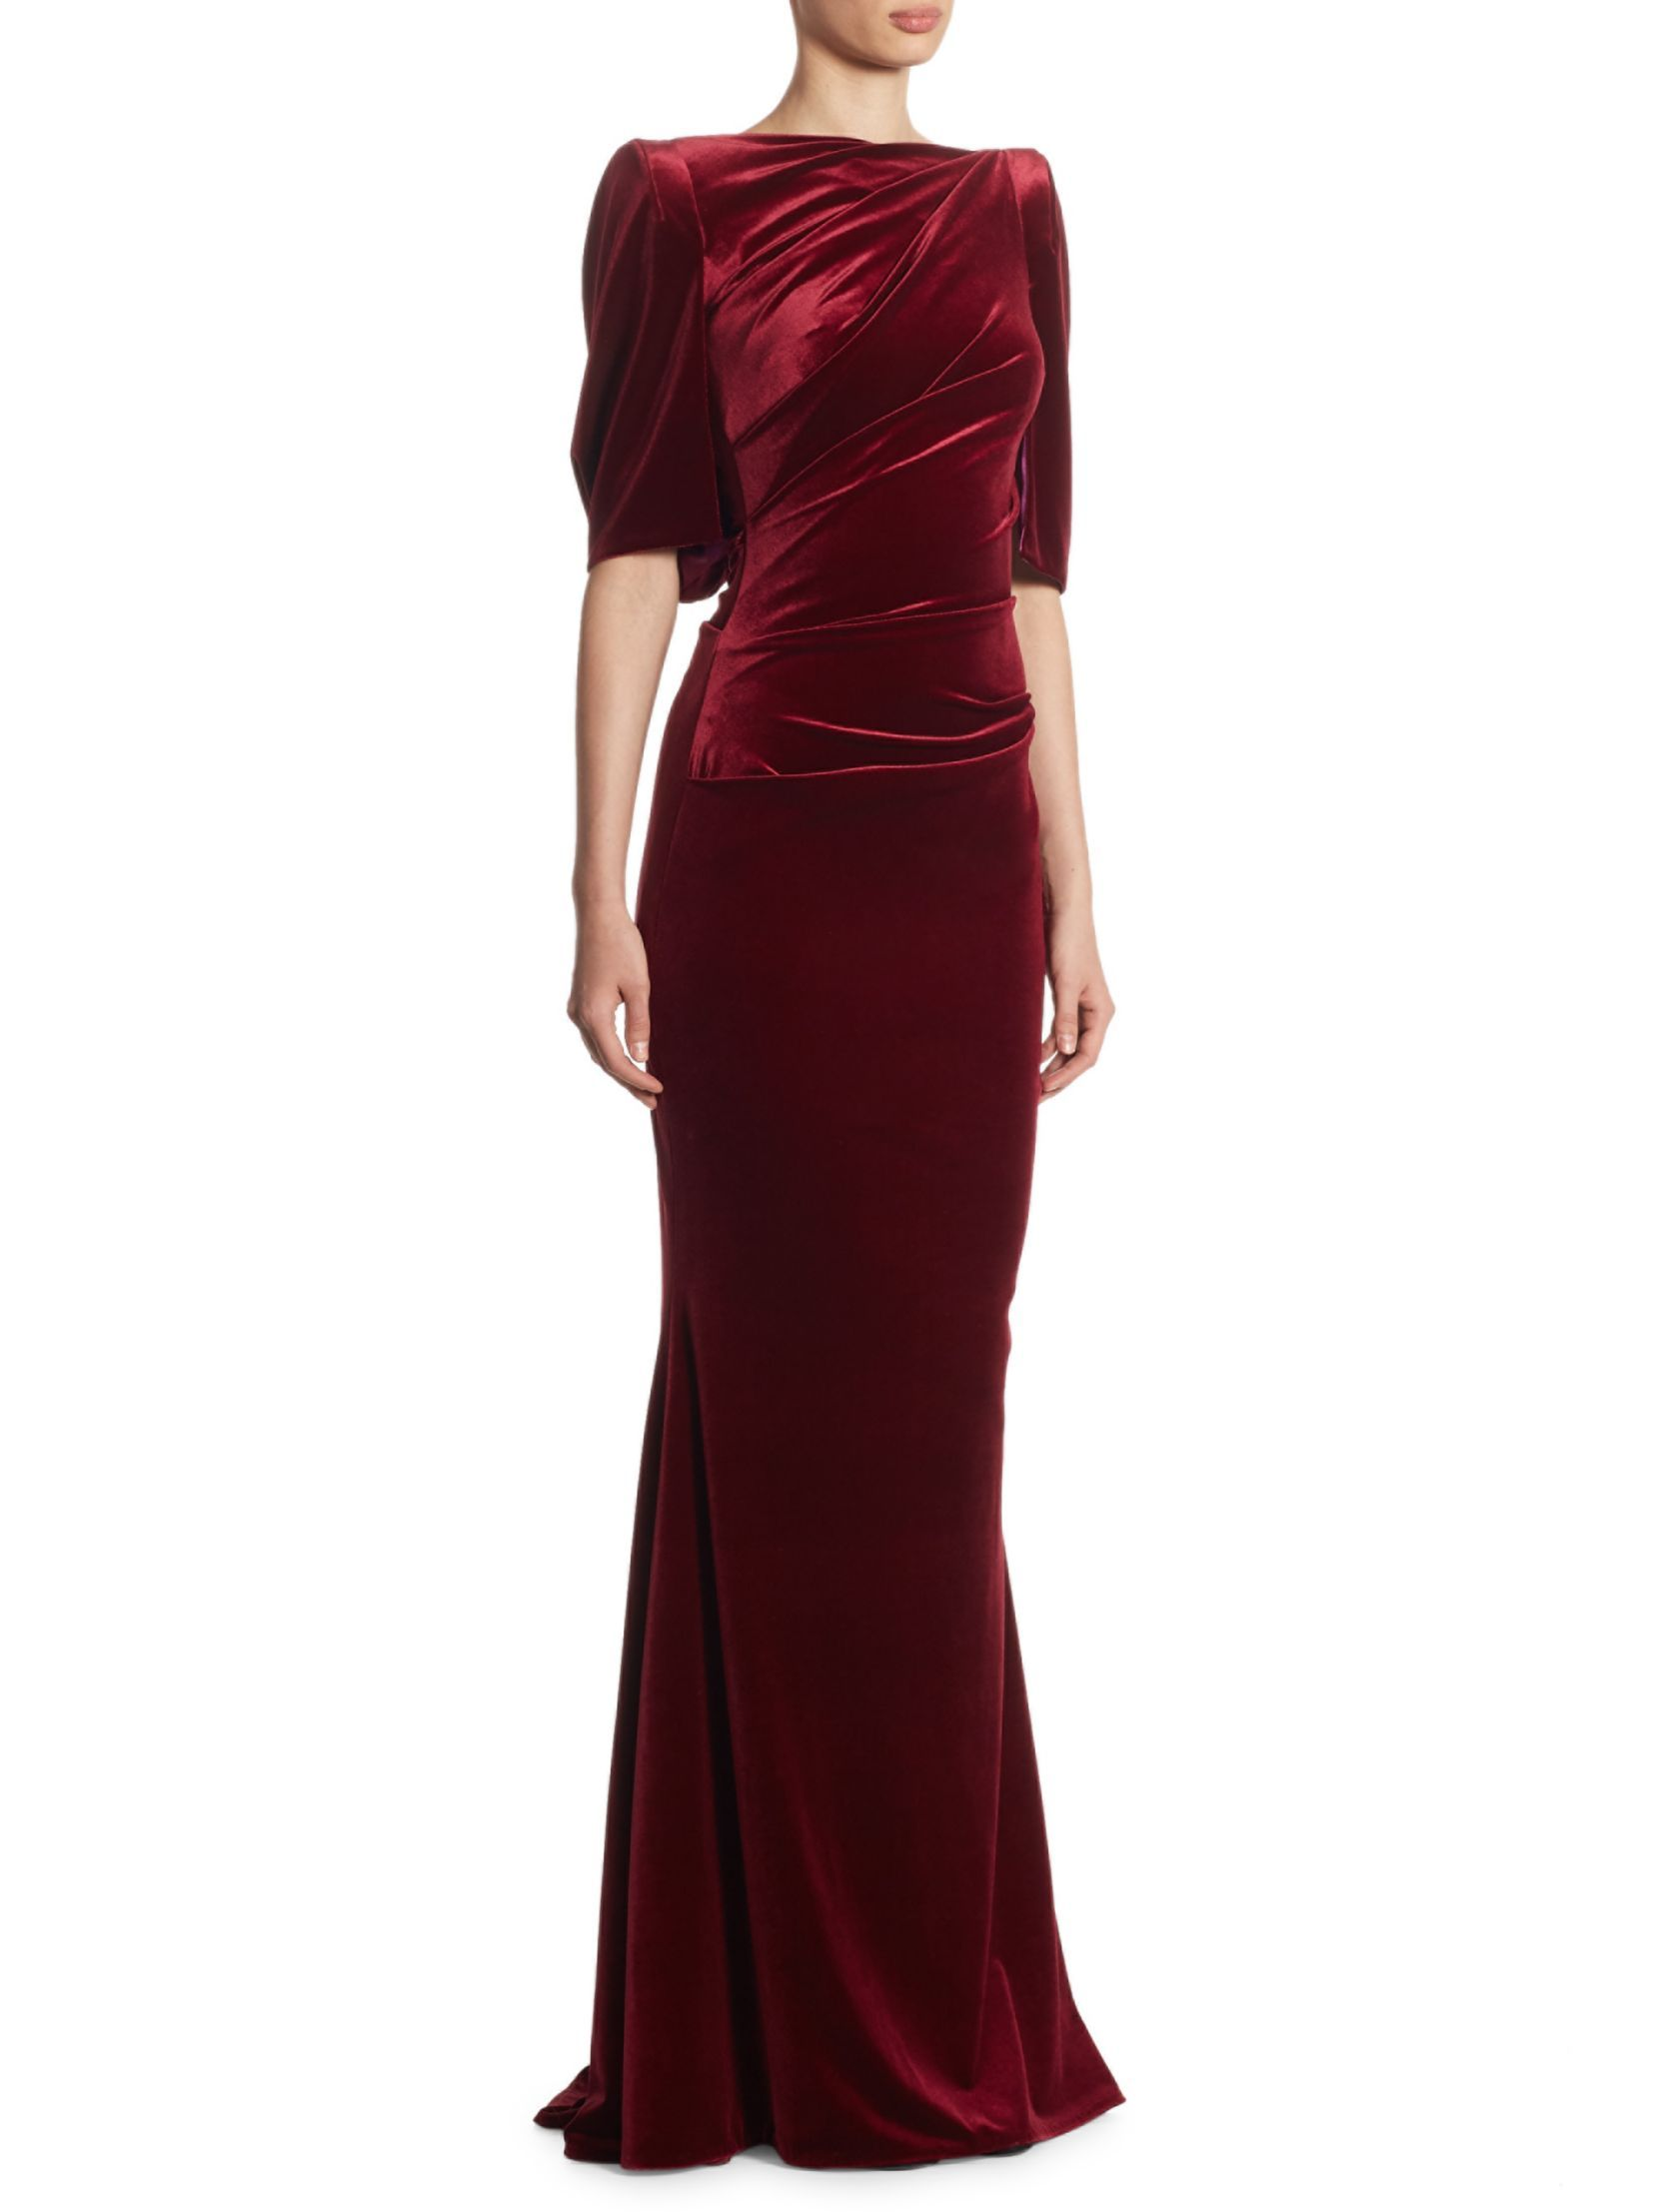 Neiman marcus dresses for weddings  Ruched Velvet Gown  Pinterest  Velvet gown Talbot runhof and Talbots